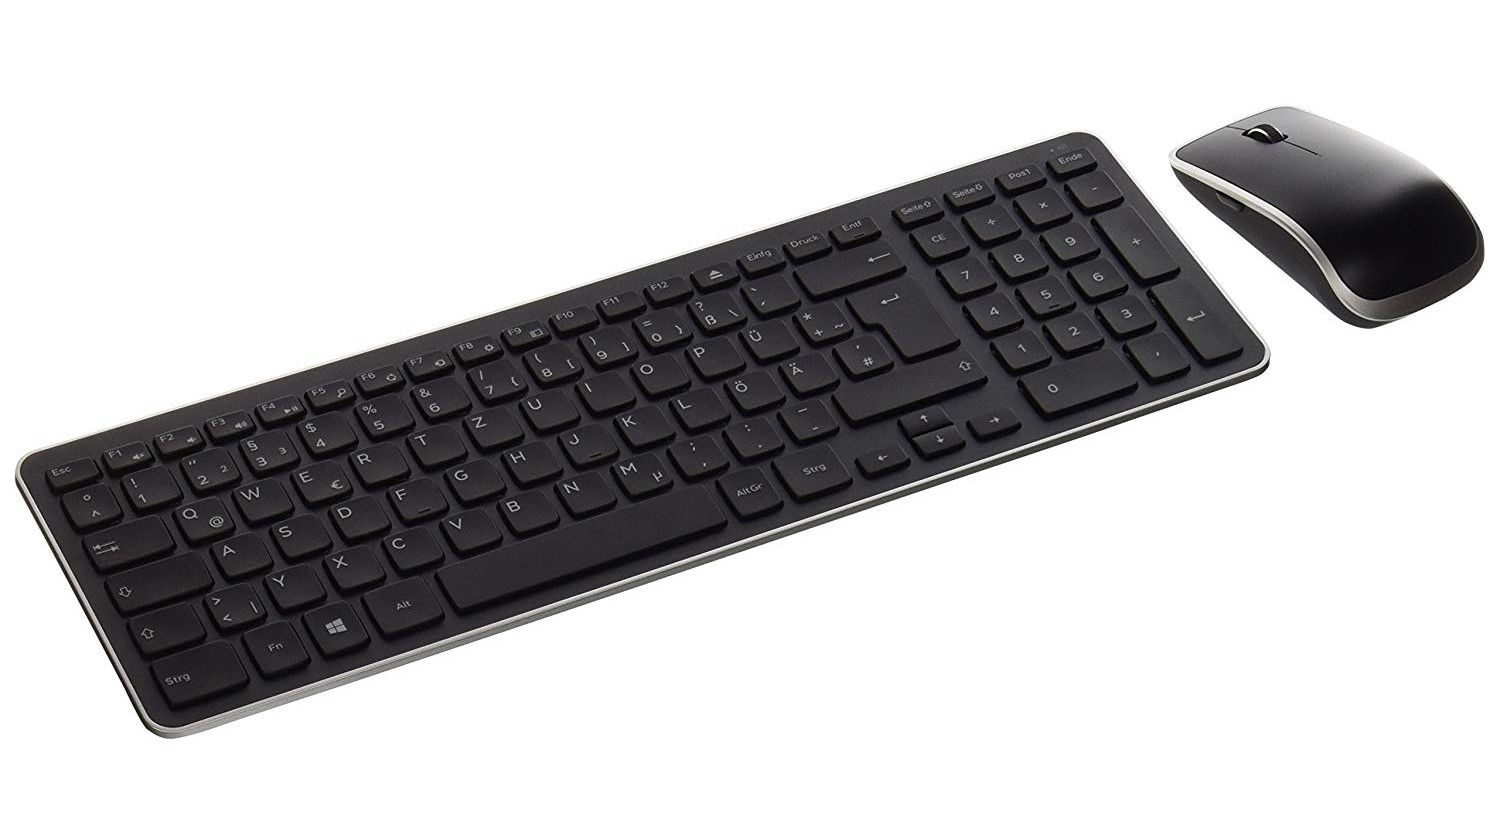 Wired Dell KM714 Wireless Keyboard Mouse